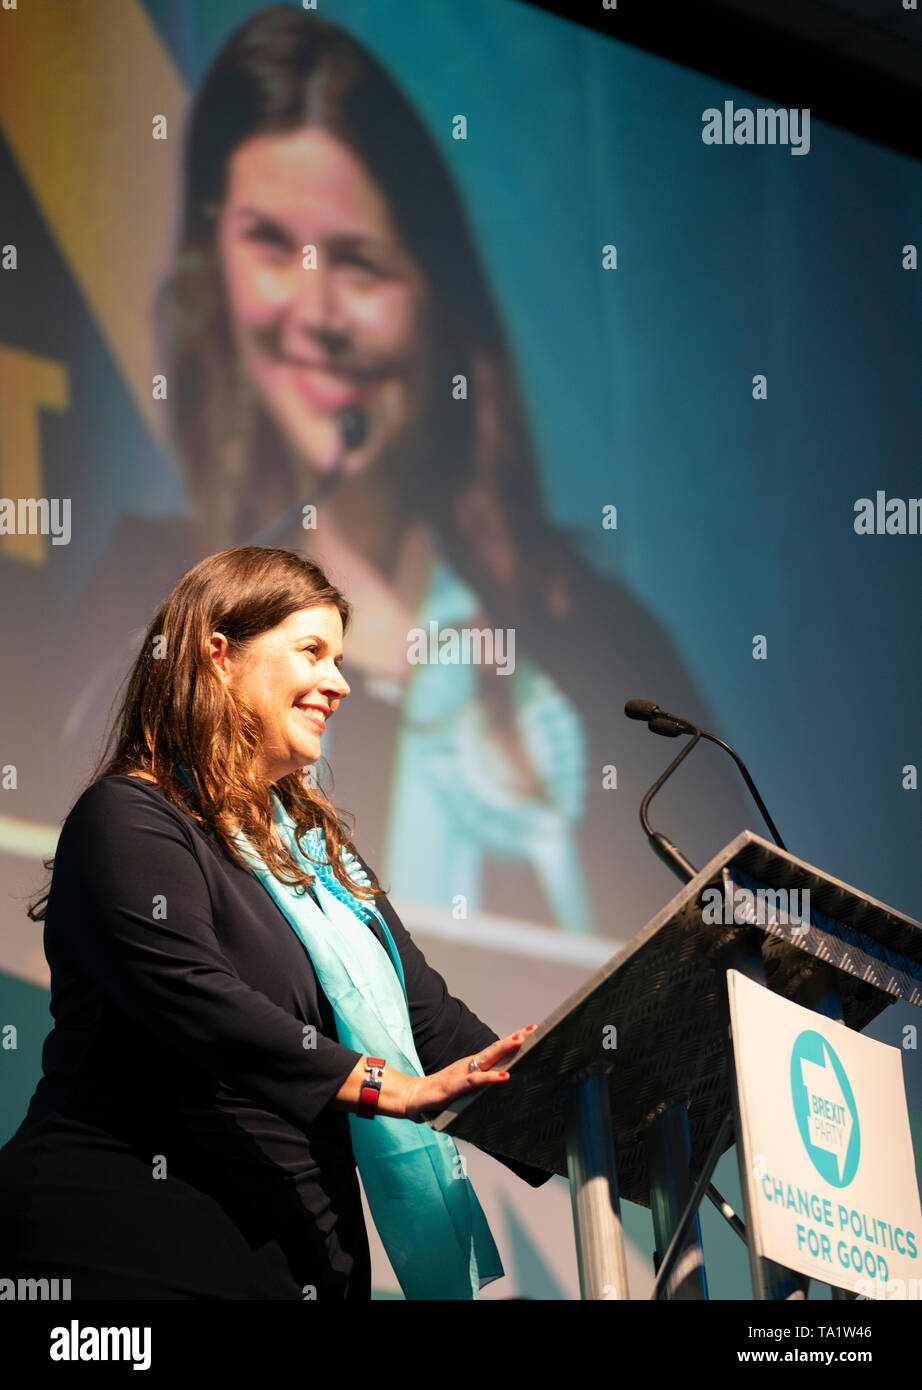 Karina Walker Brexit Party candidate in European Elections 2019 speaks at meeting in Edinburgh on 17 May 2019, Scotland, UK Stock Photo